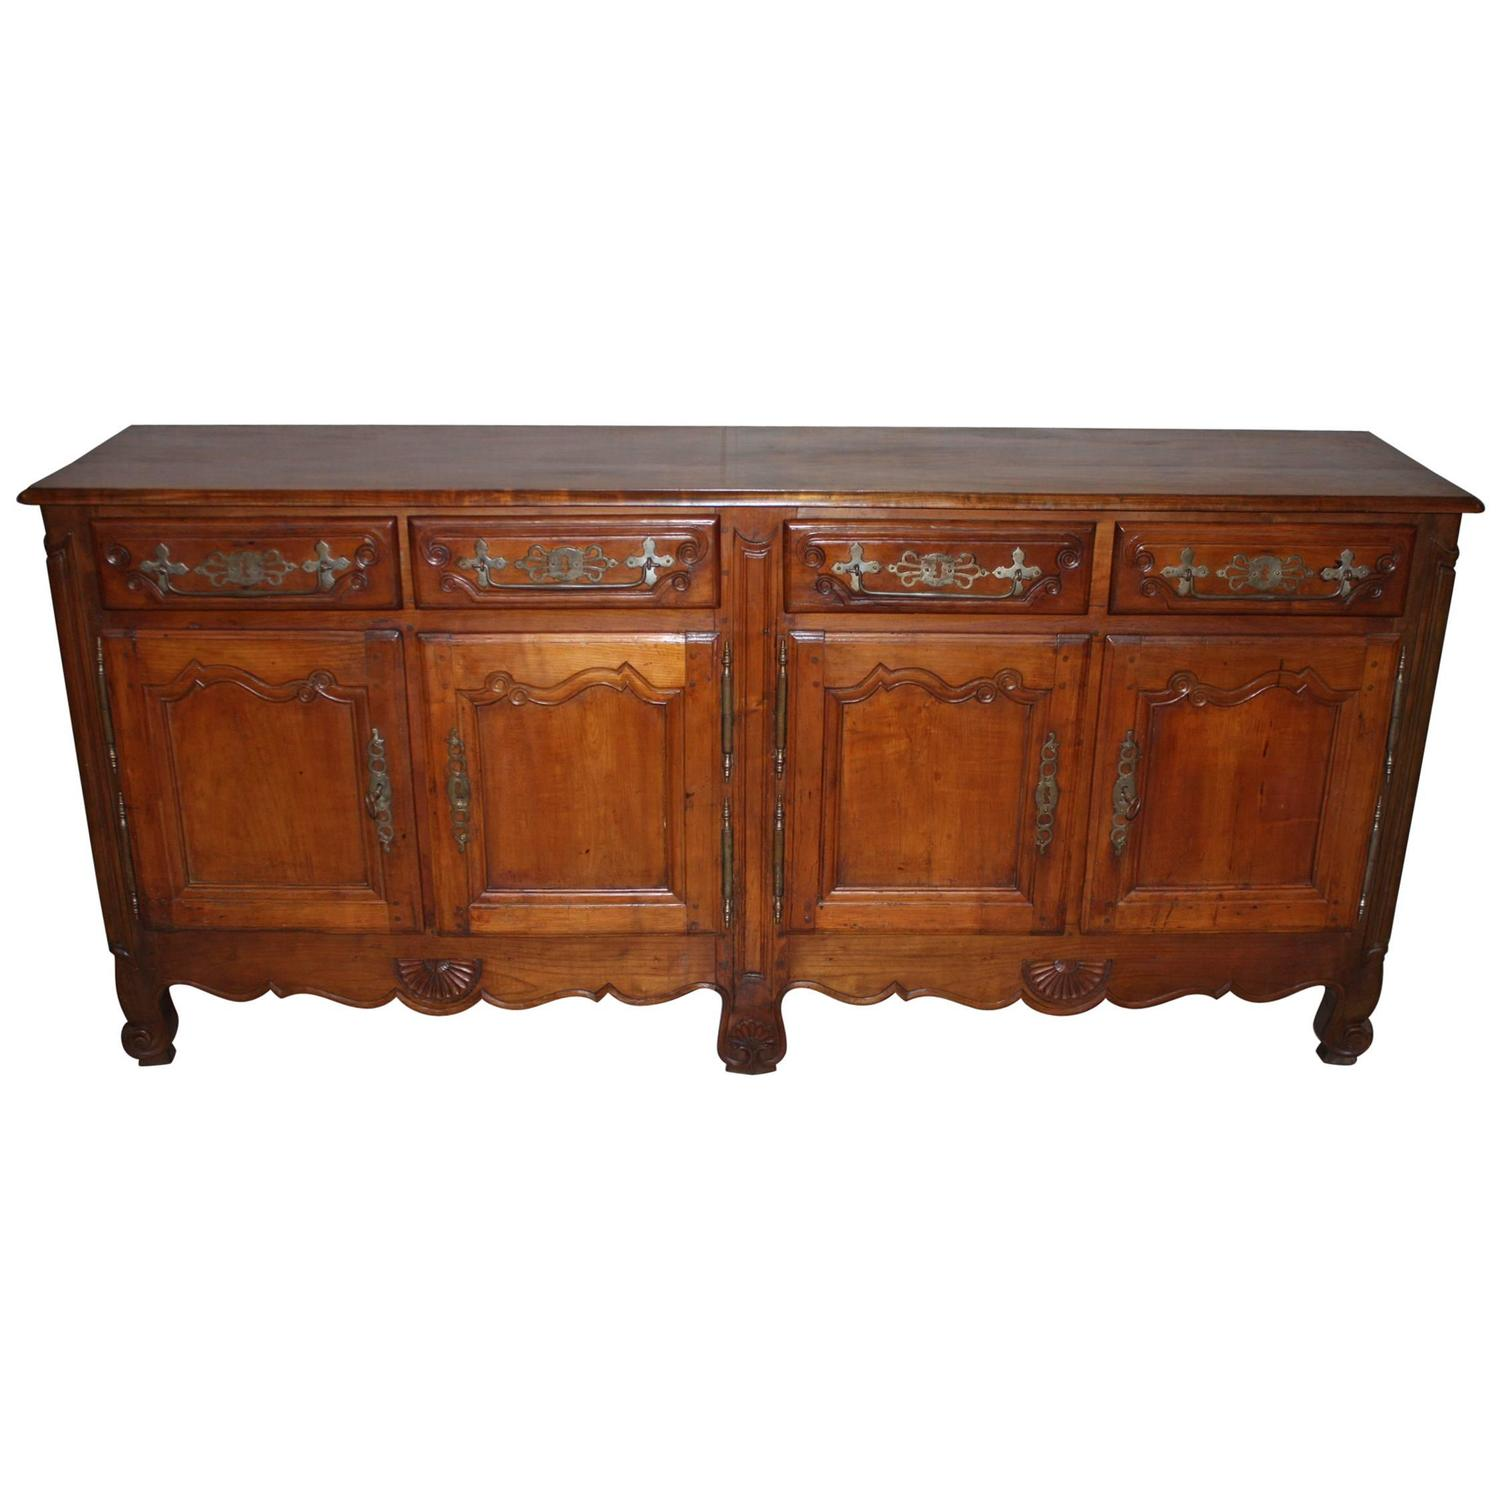 19th century louis xv walnut buffet enfilade sideboard at 1stdibs. Black Bedroom Furniture Sets. Home Design Ideas